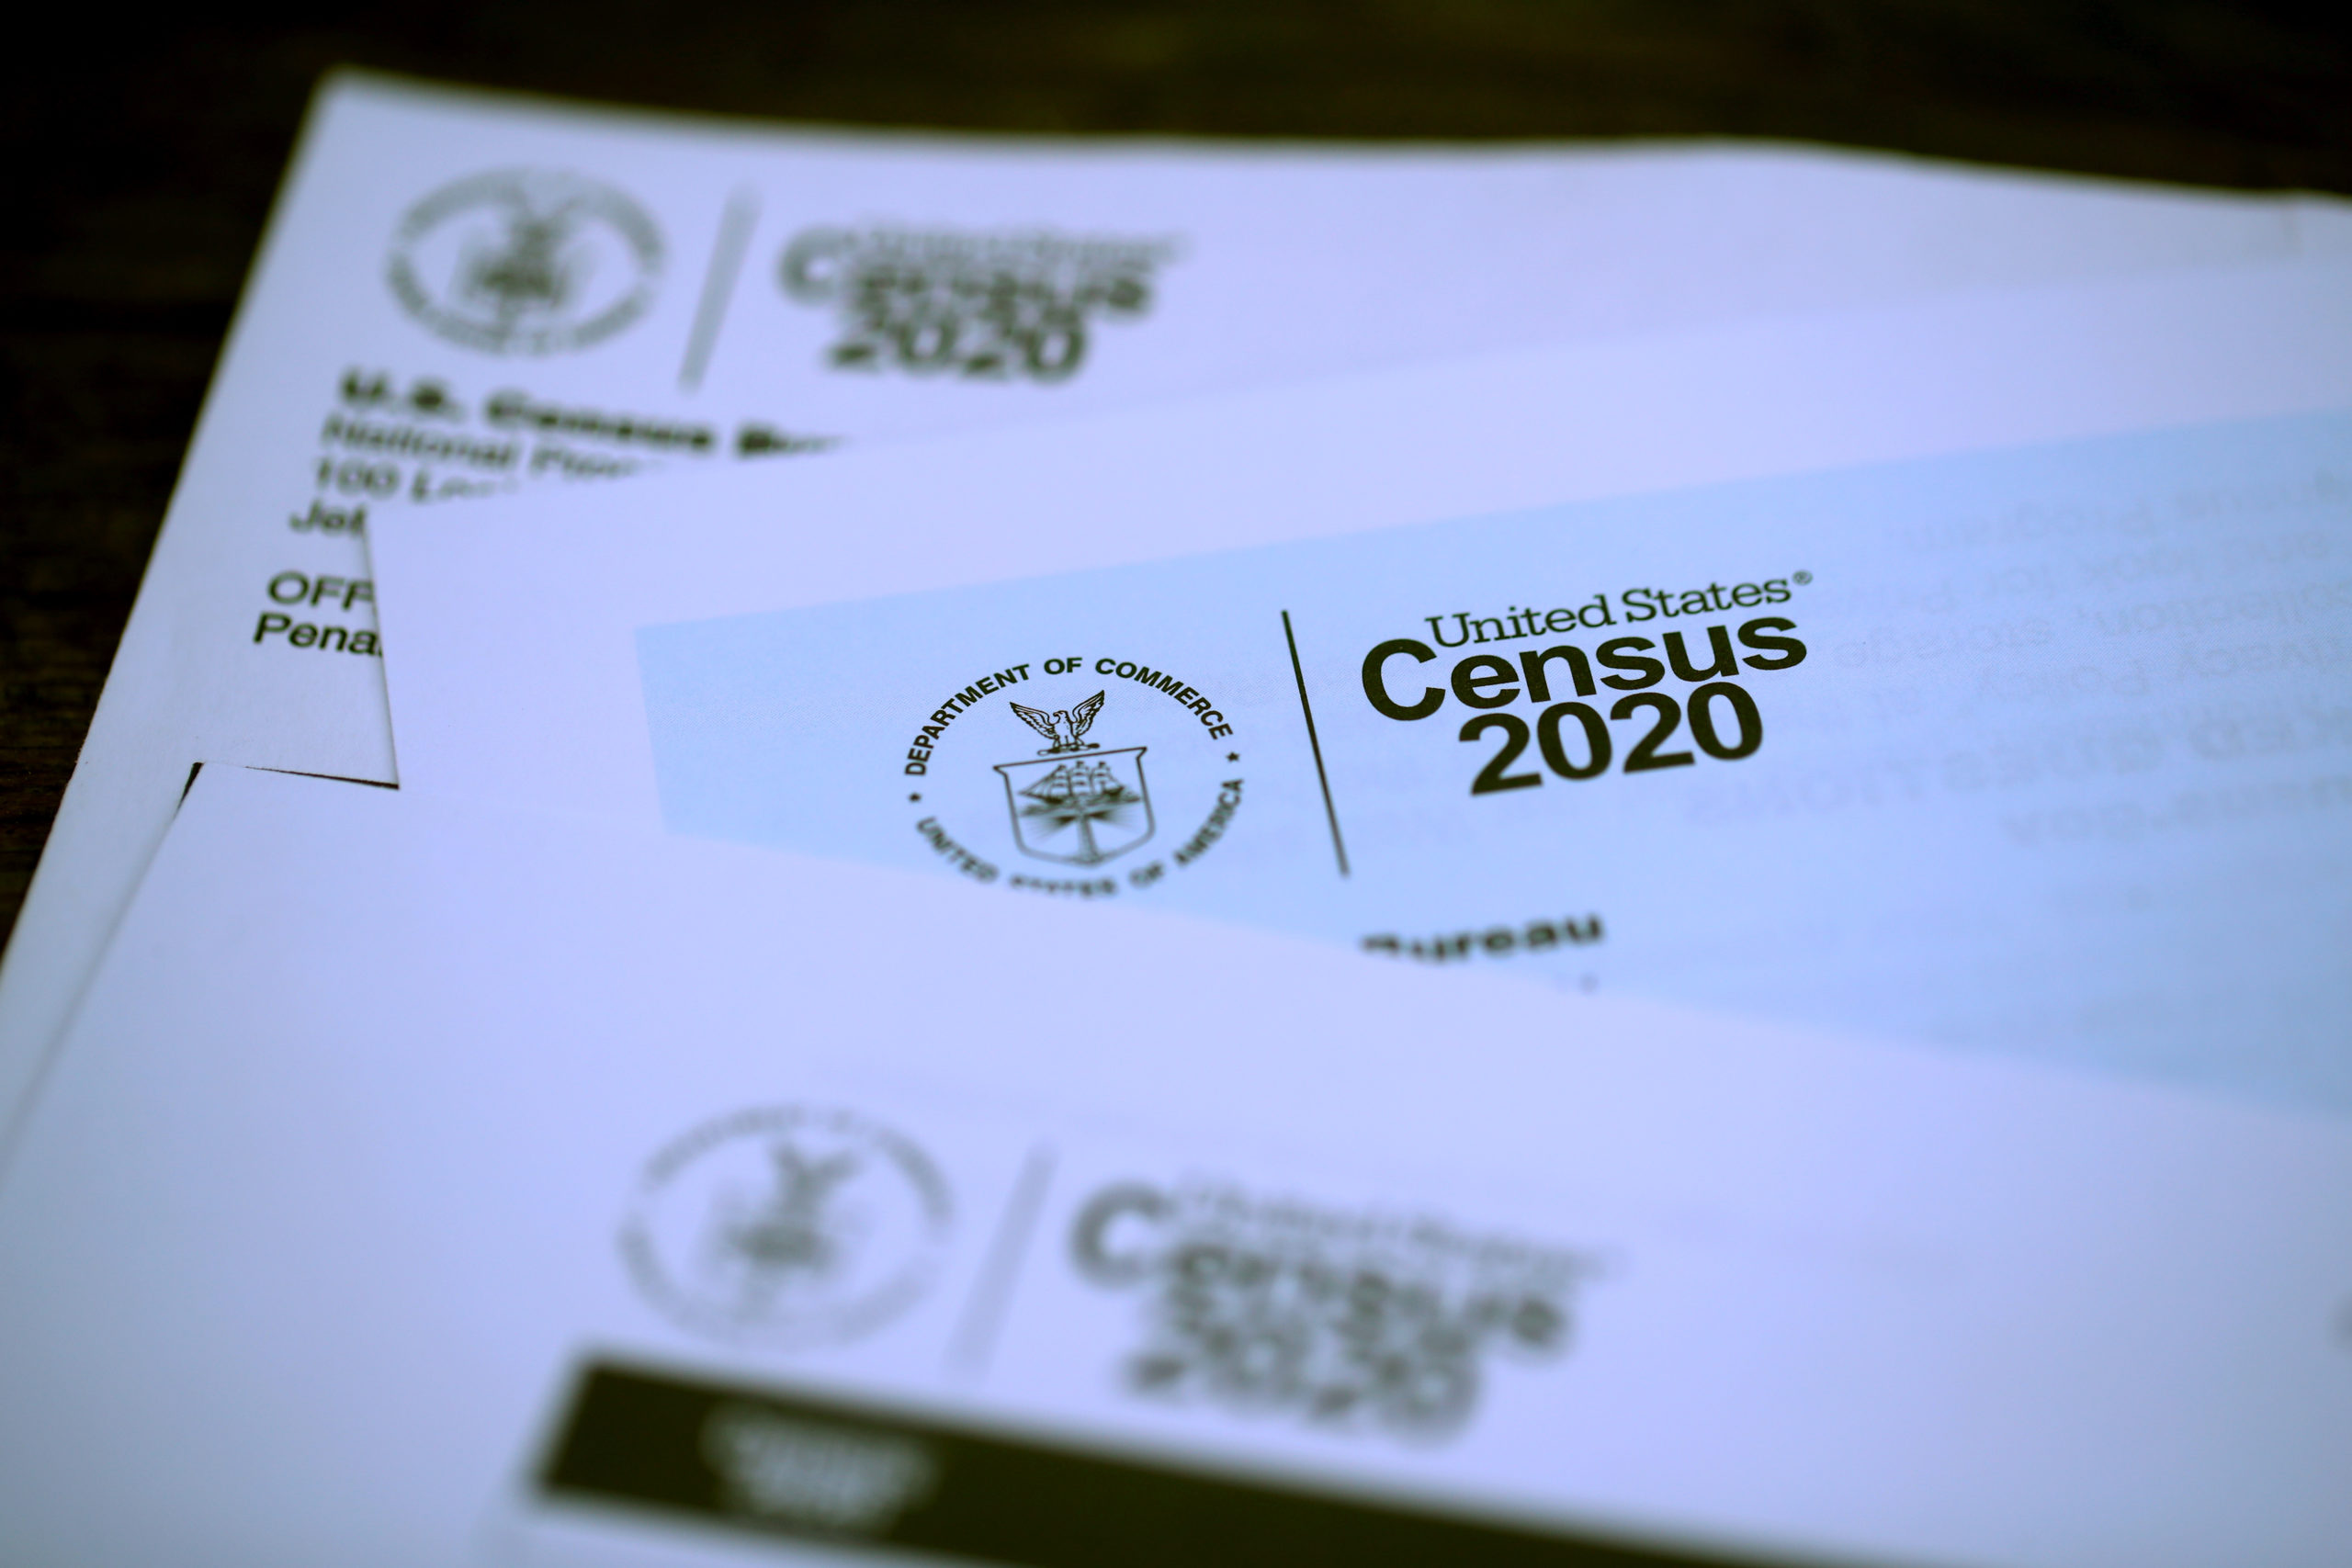 SAN ANSELMO, CALIFORNIA - MARCH 19: The U.S. Census logo appears on census materials received in the mail with an invitation to fill out census information online on March 19, 2020 in San Anselmo, California. The U.S. Census Bureau announced that it has suspended census field operations for the next two weeks over concerns of the census workers and their public interactions amid the global coronavirus pandemic. (Photo Illustration by Justin Sullivan/Getty Images)